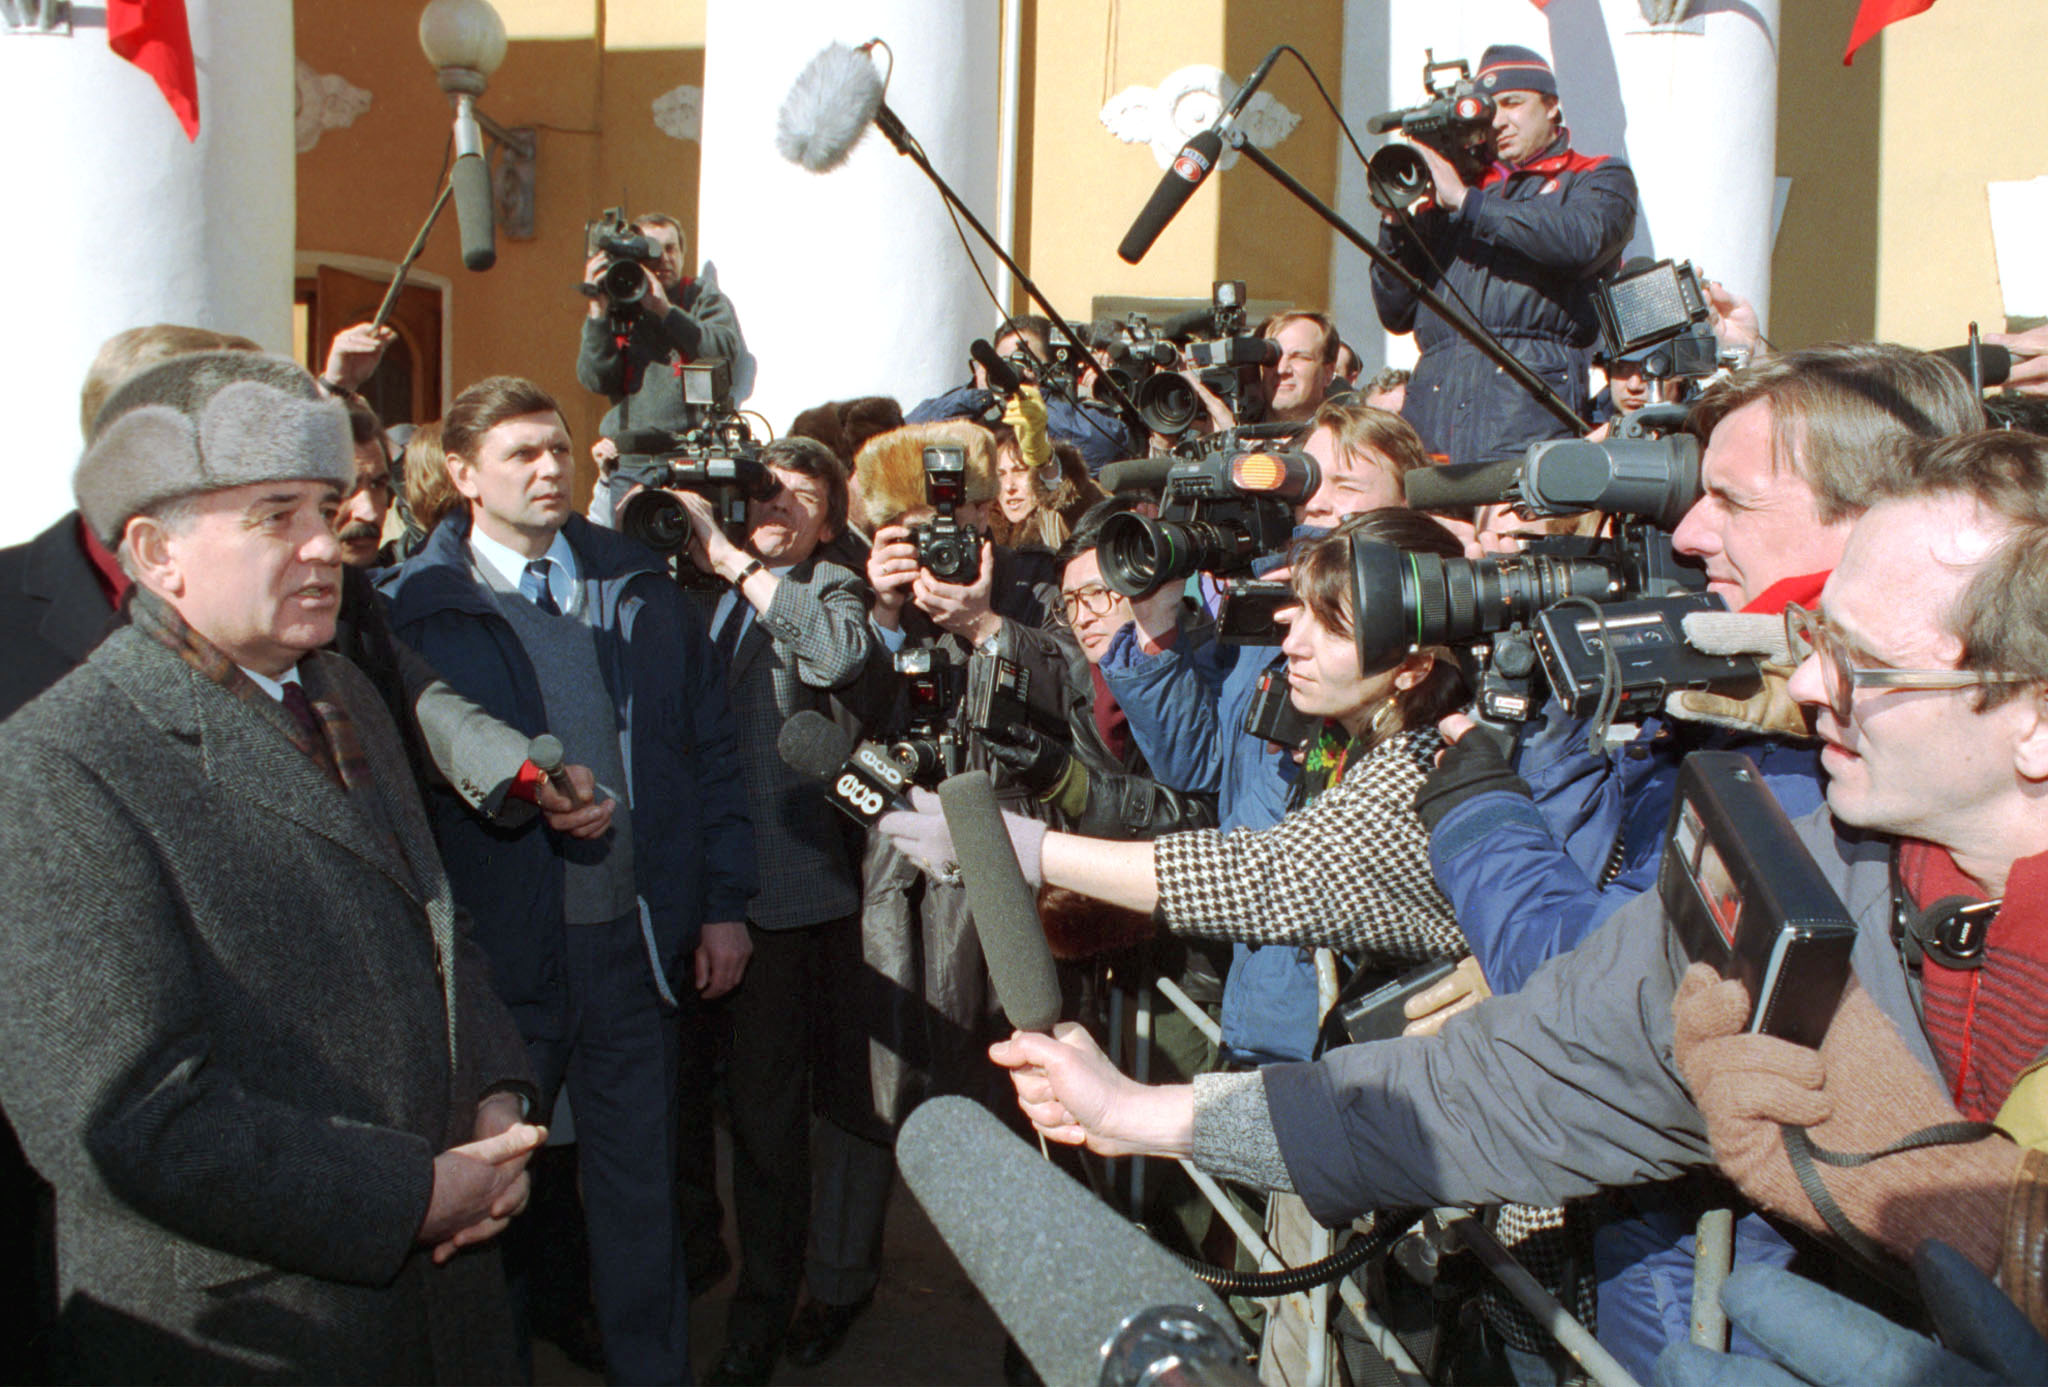 President of Soviet Union Mikhail Gorbachev to give interview after referendum, 1991